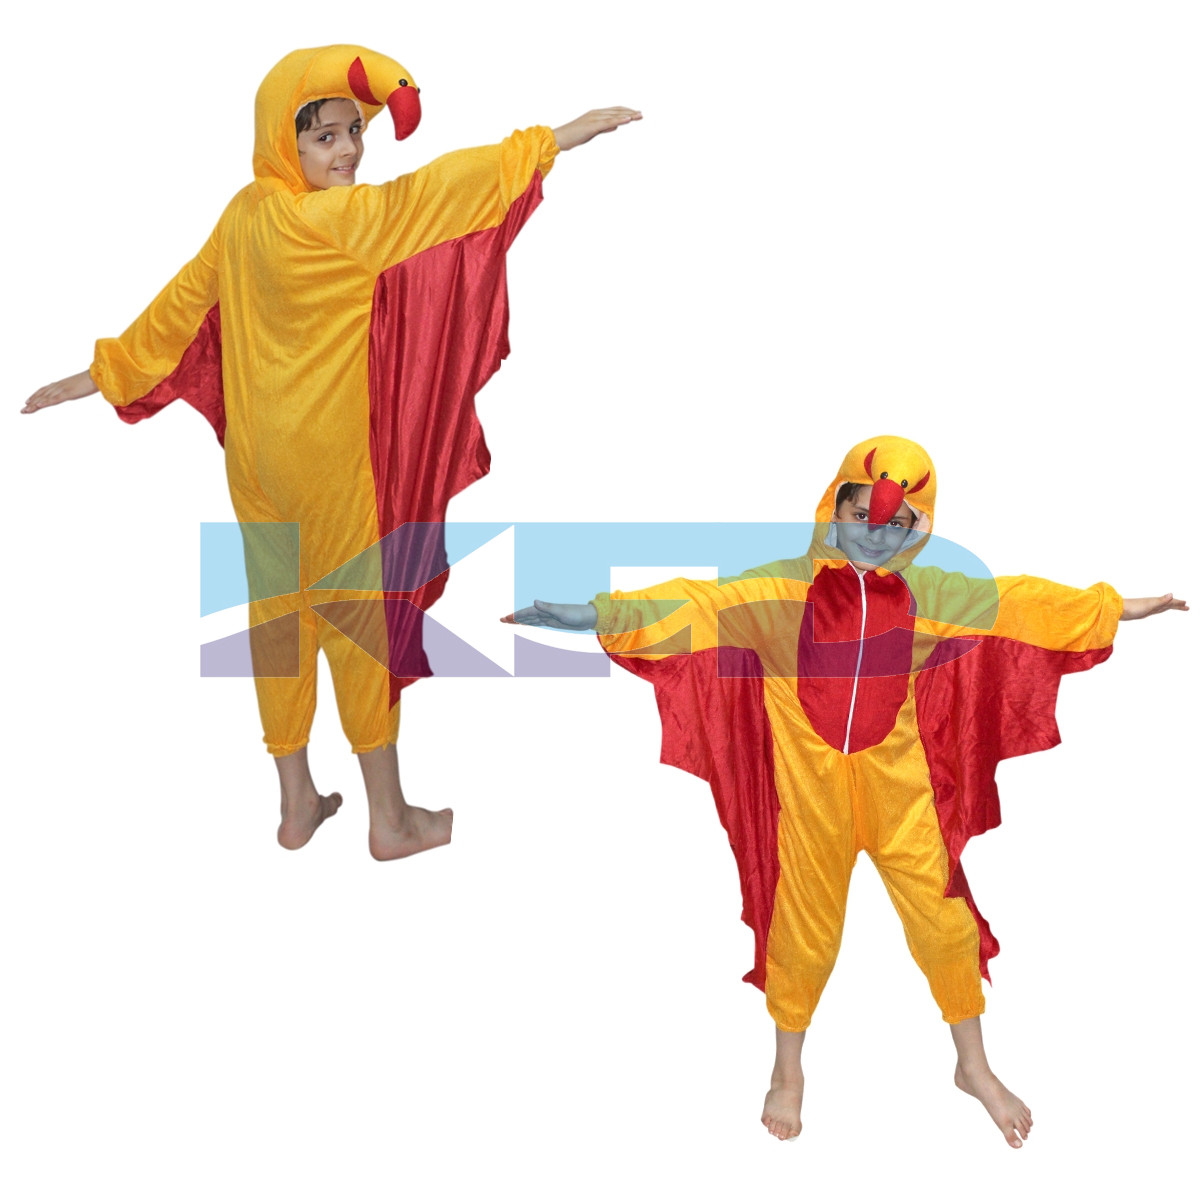 Macaw Bird fancy dress for kids,Bird Costume for School Annual function/Theme Party/Competition/Stage Shows Dress